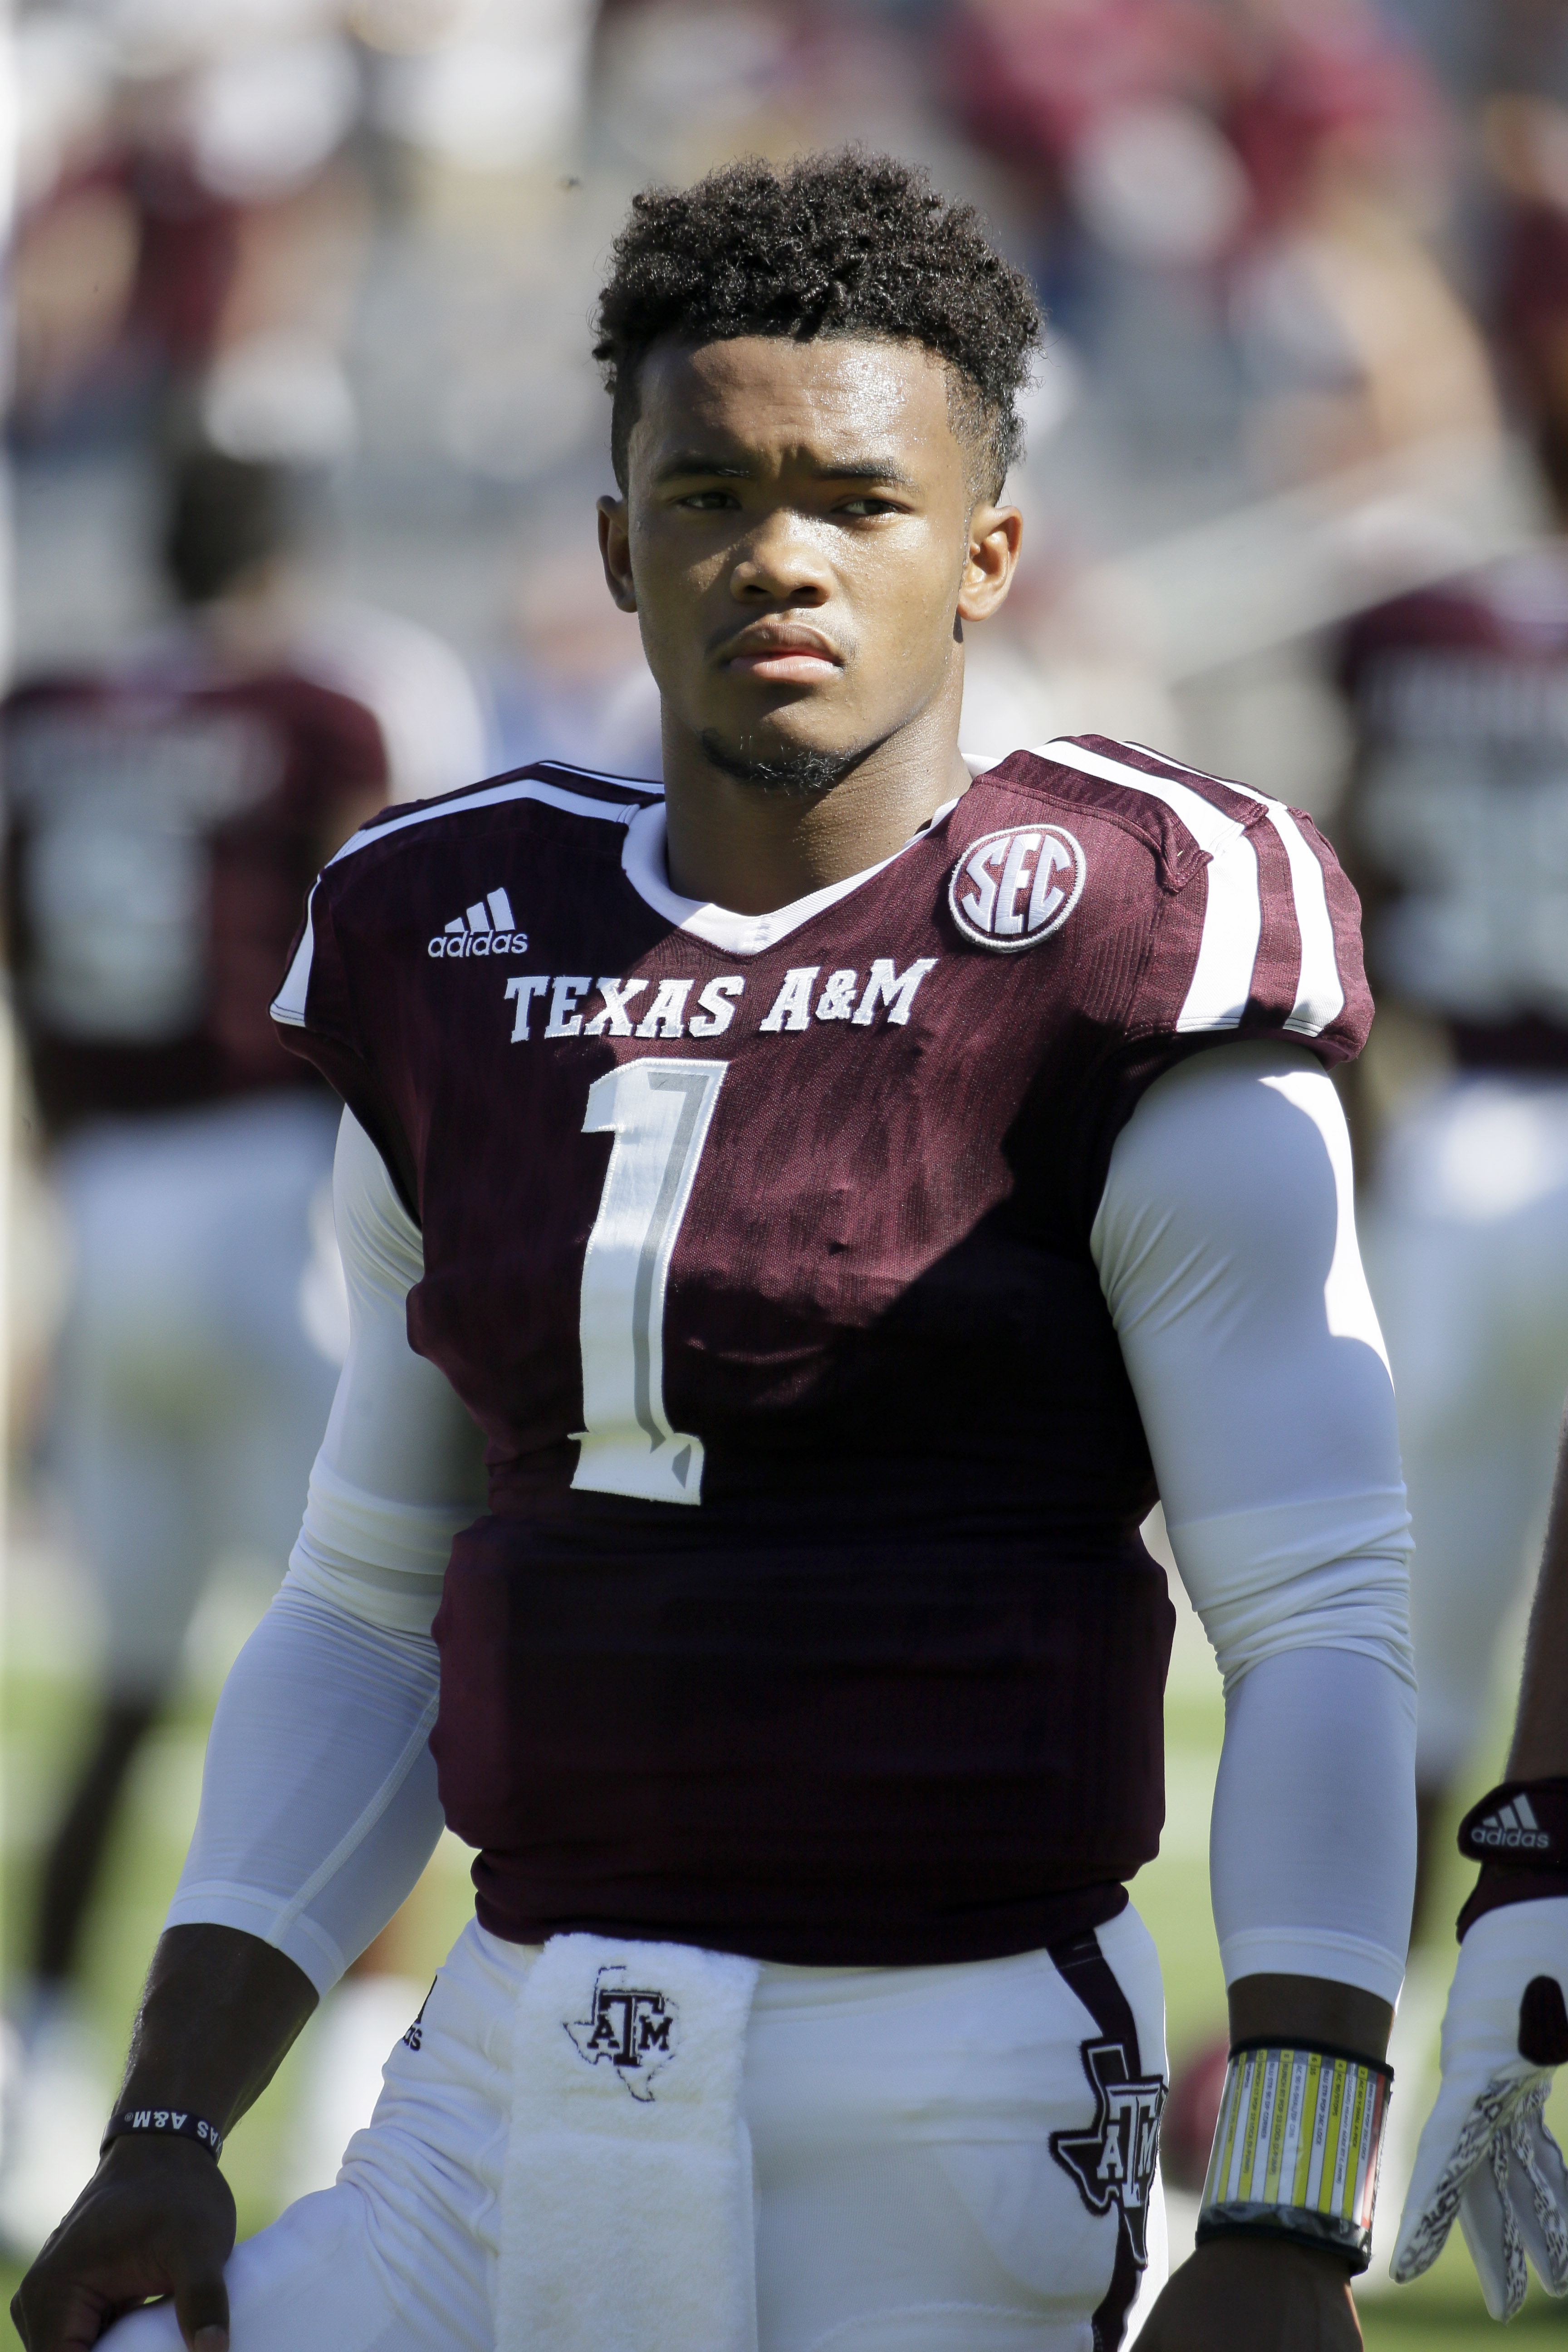 Texas A&M quarterback Kyler Murray (1) waits to sing a school song before an NCAA college football game against Nevada Saturday, Sept. 19, 2015, in College Station, Texas. (AP Photo/David J. Phillip)